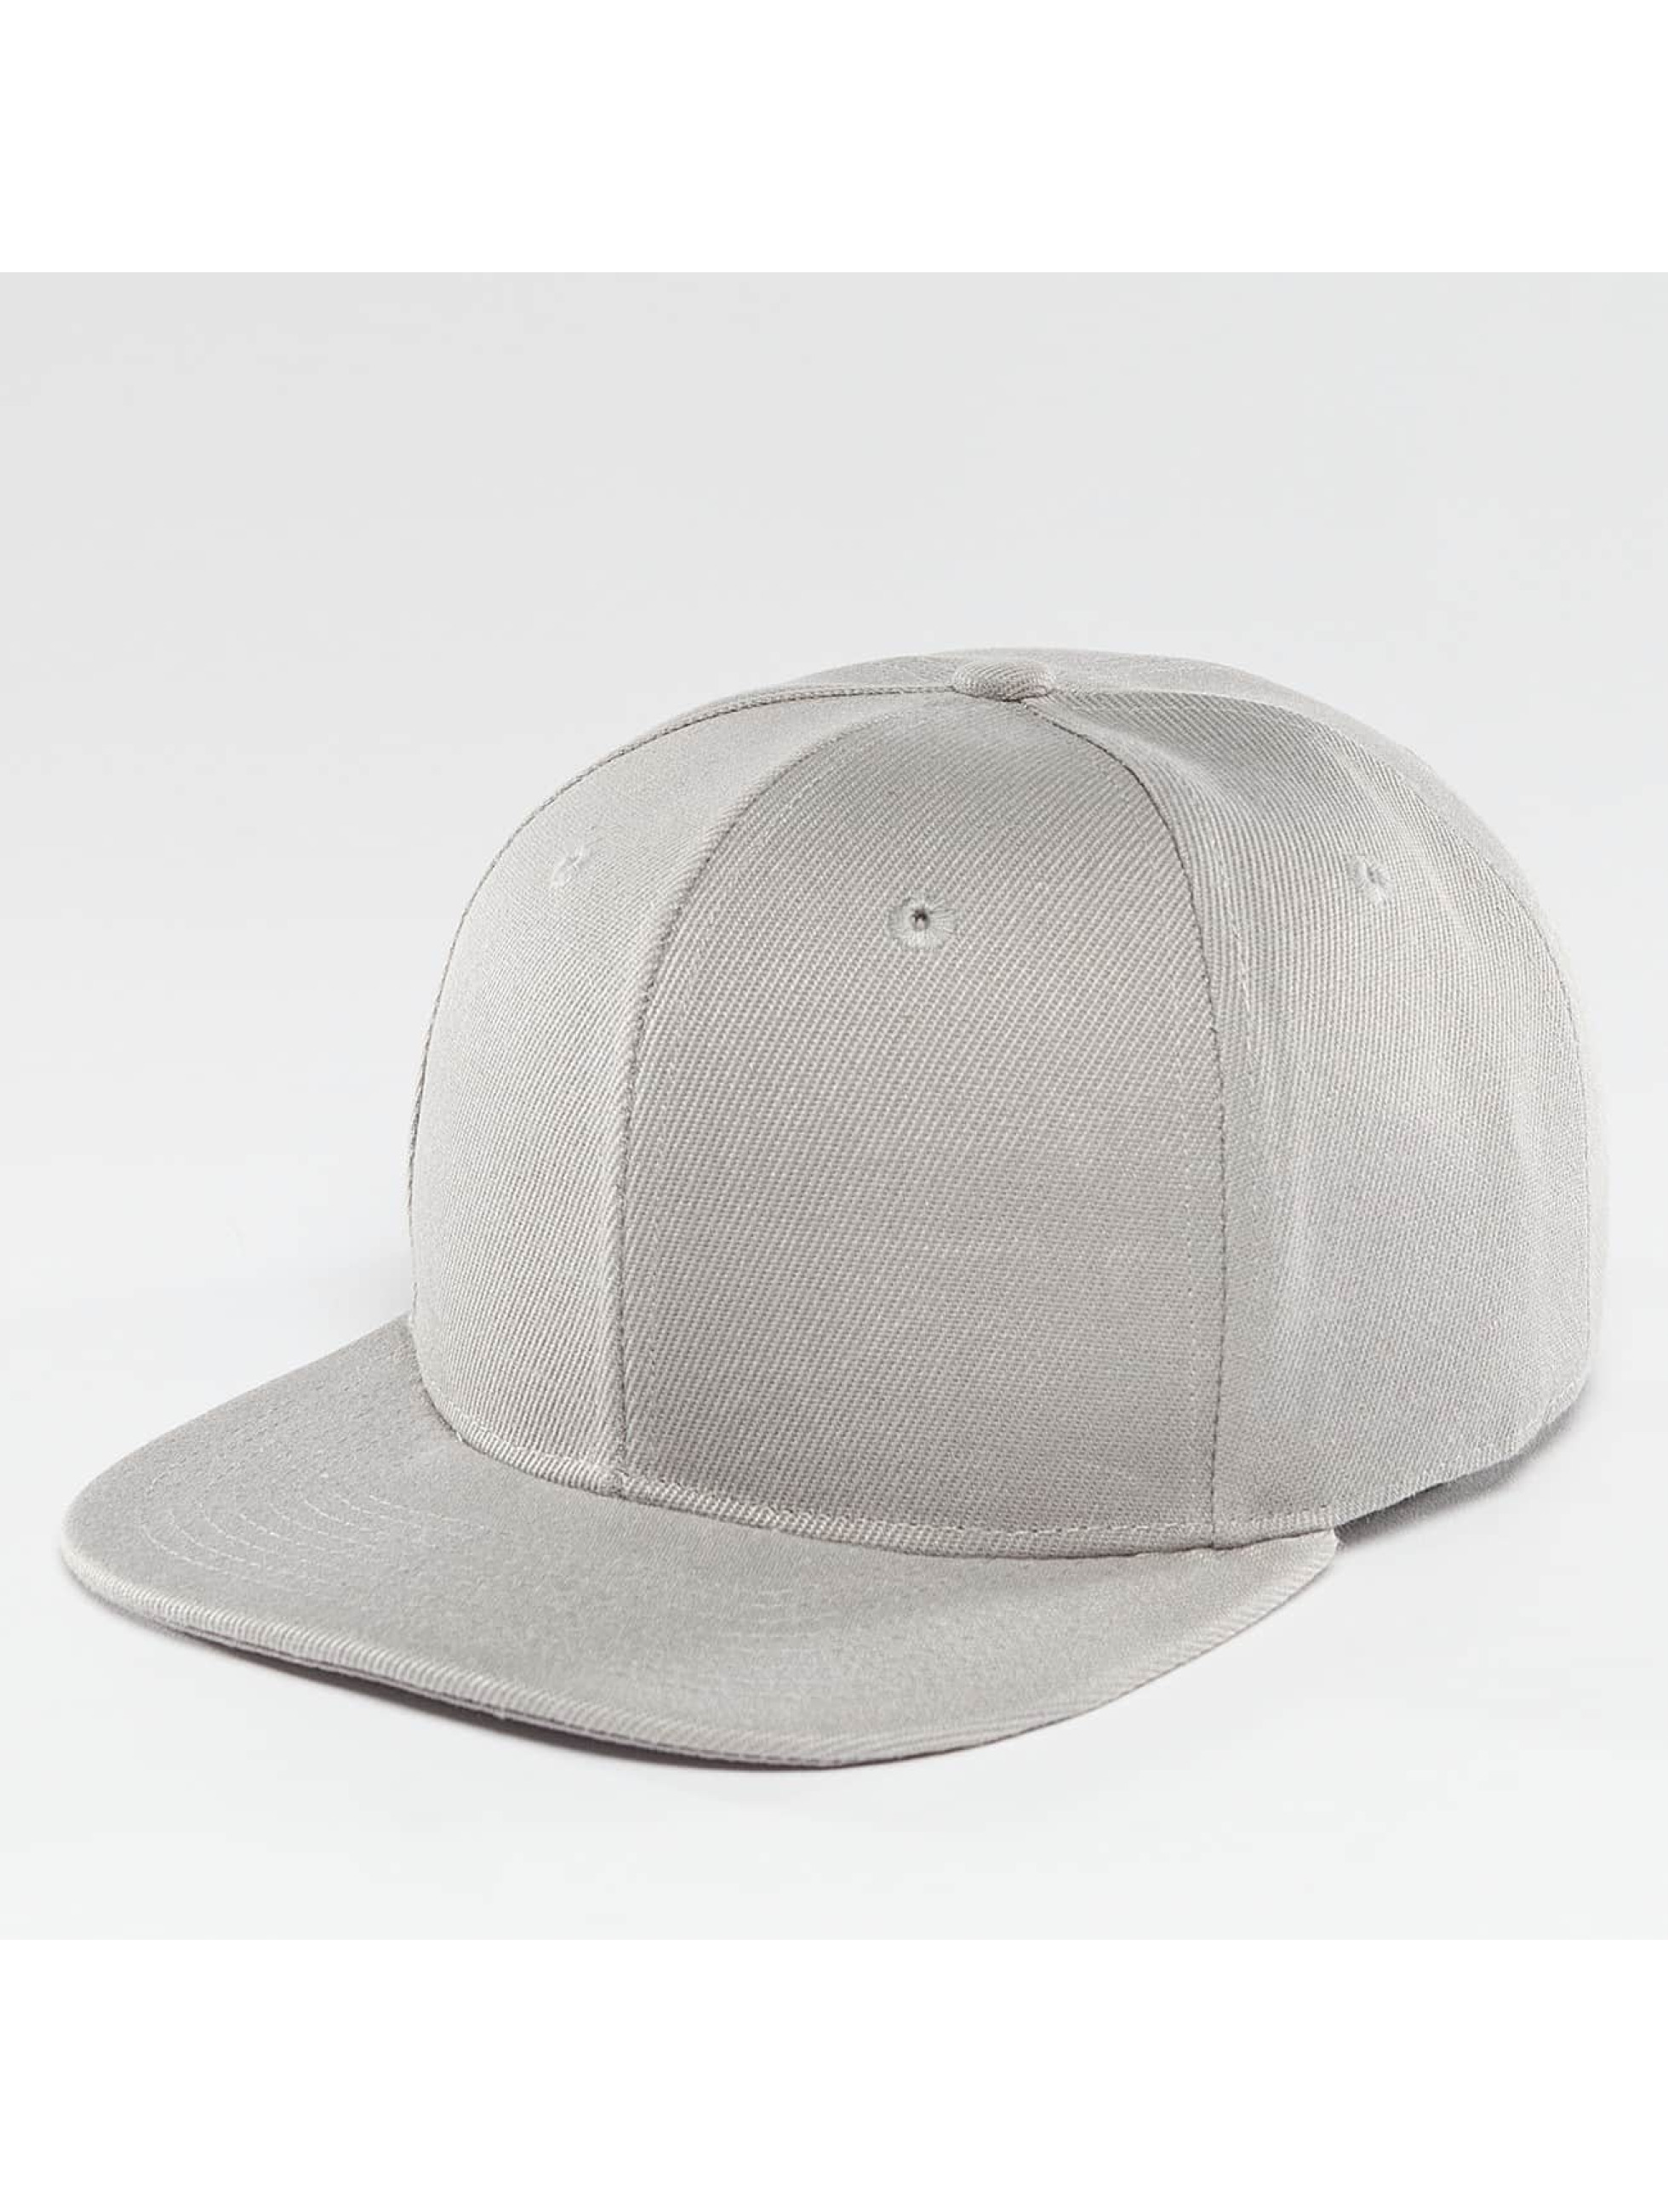 TrueSpin Casquette Snapback & Strapback Blank gris